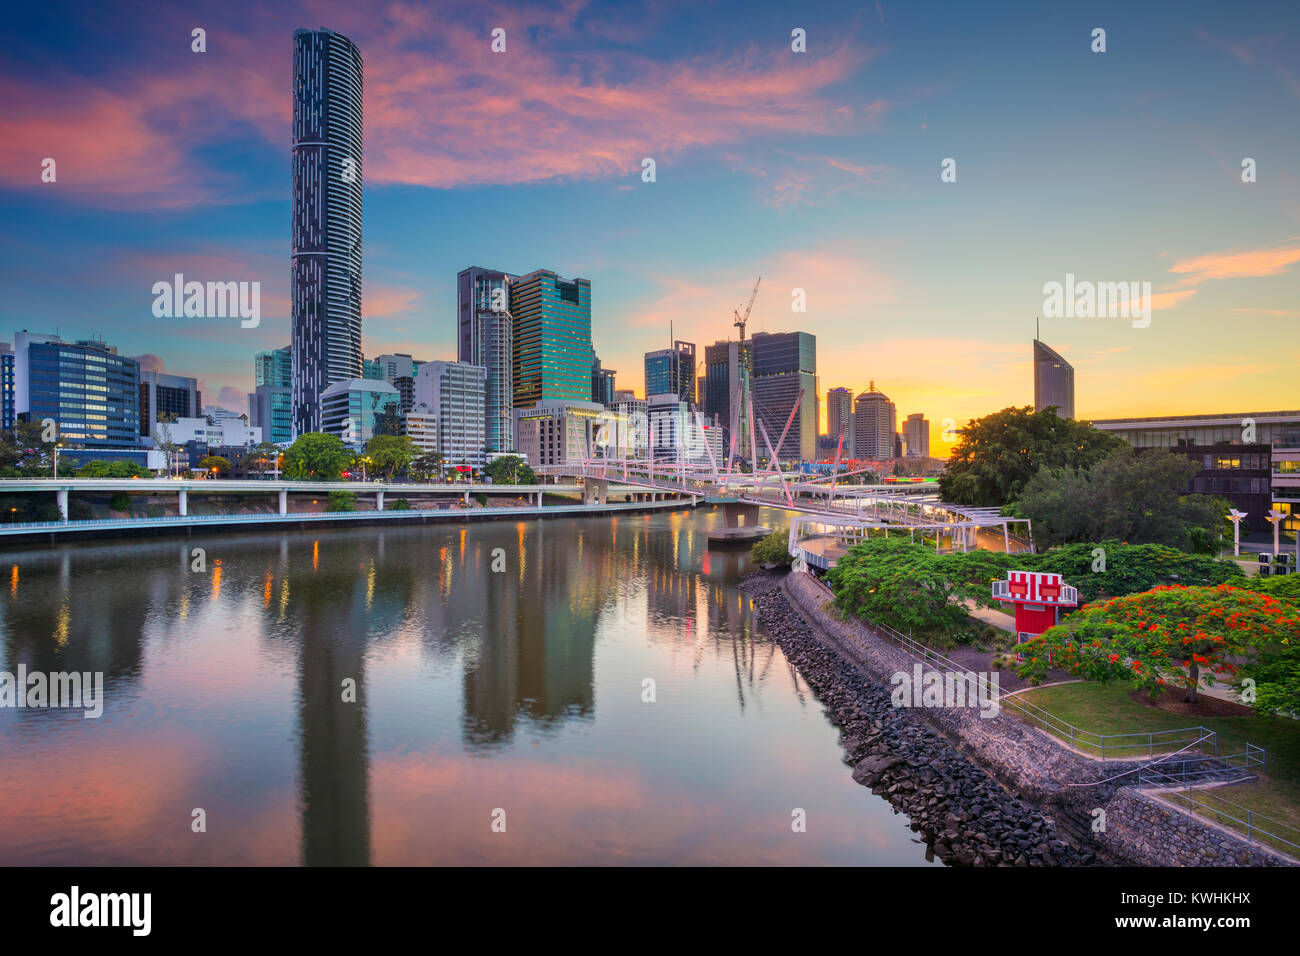 Brisbane. Cityscape image of Brisbane skyline, Australia during dramatic sunrise. - Stock Image